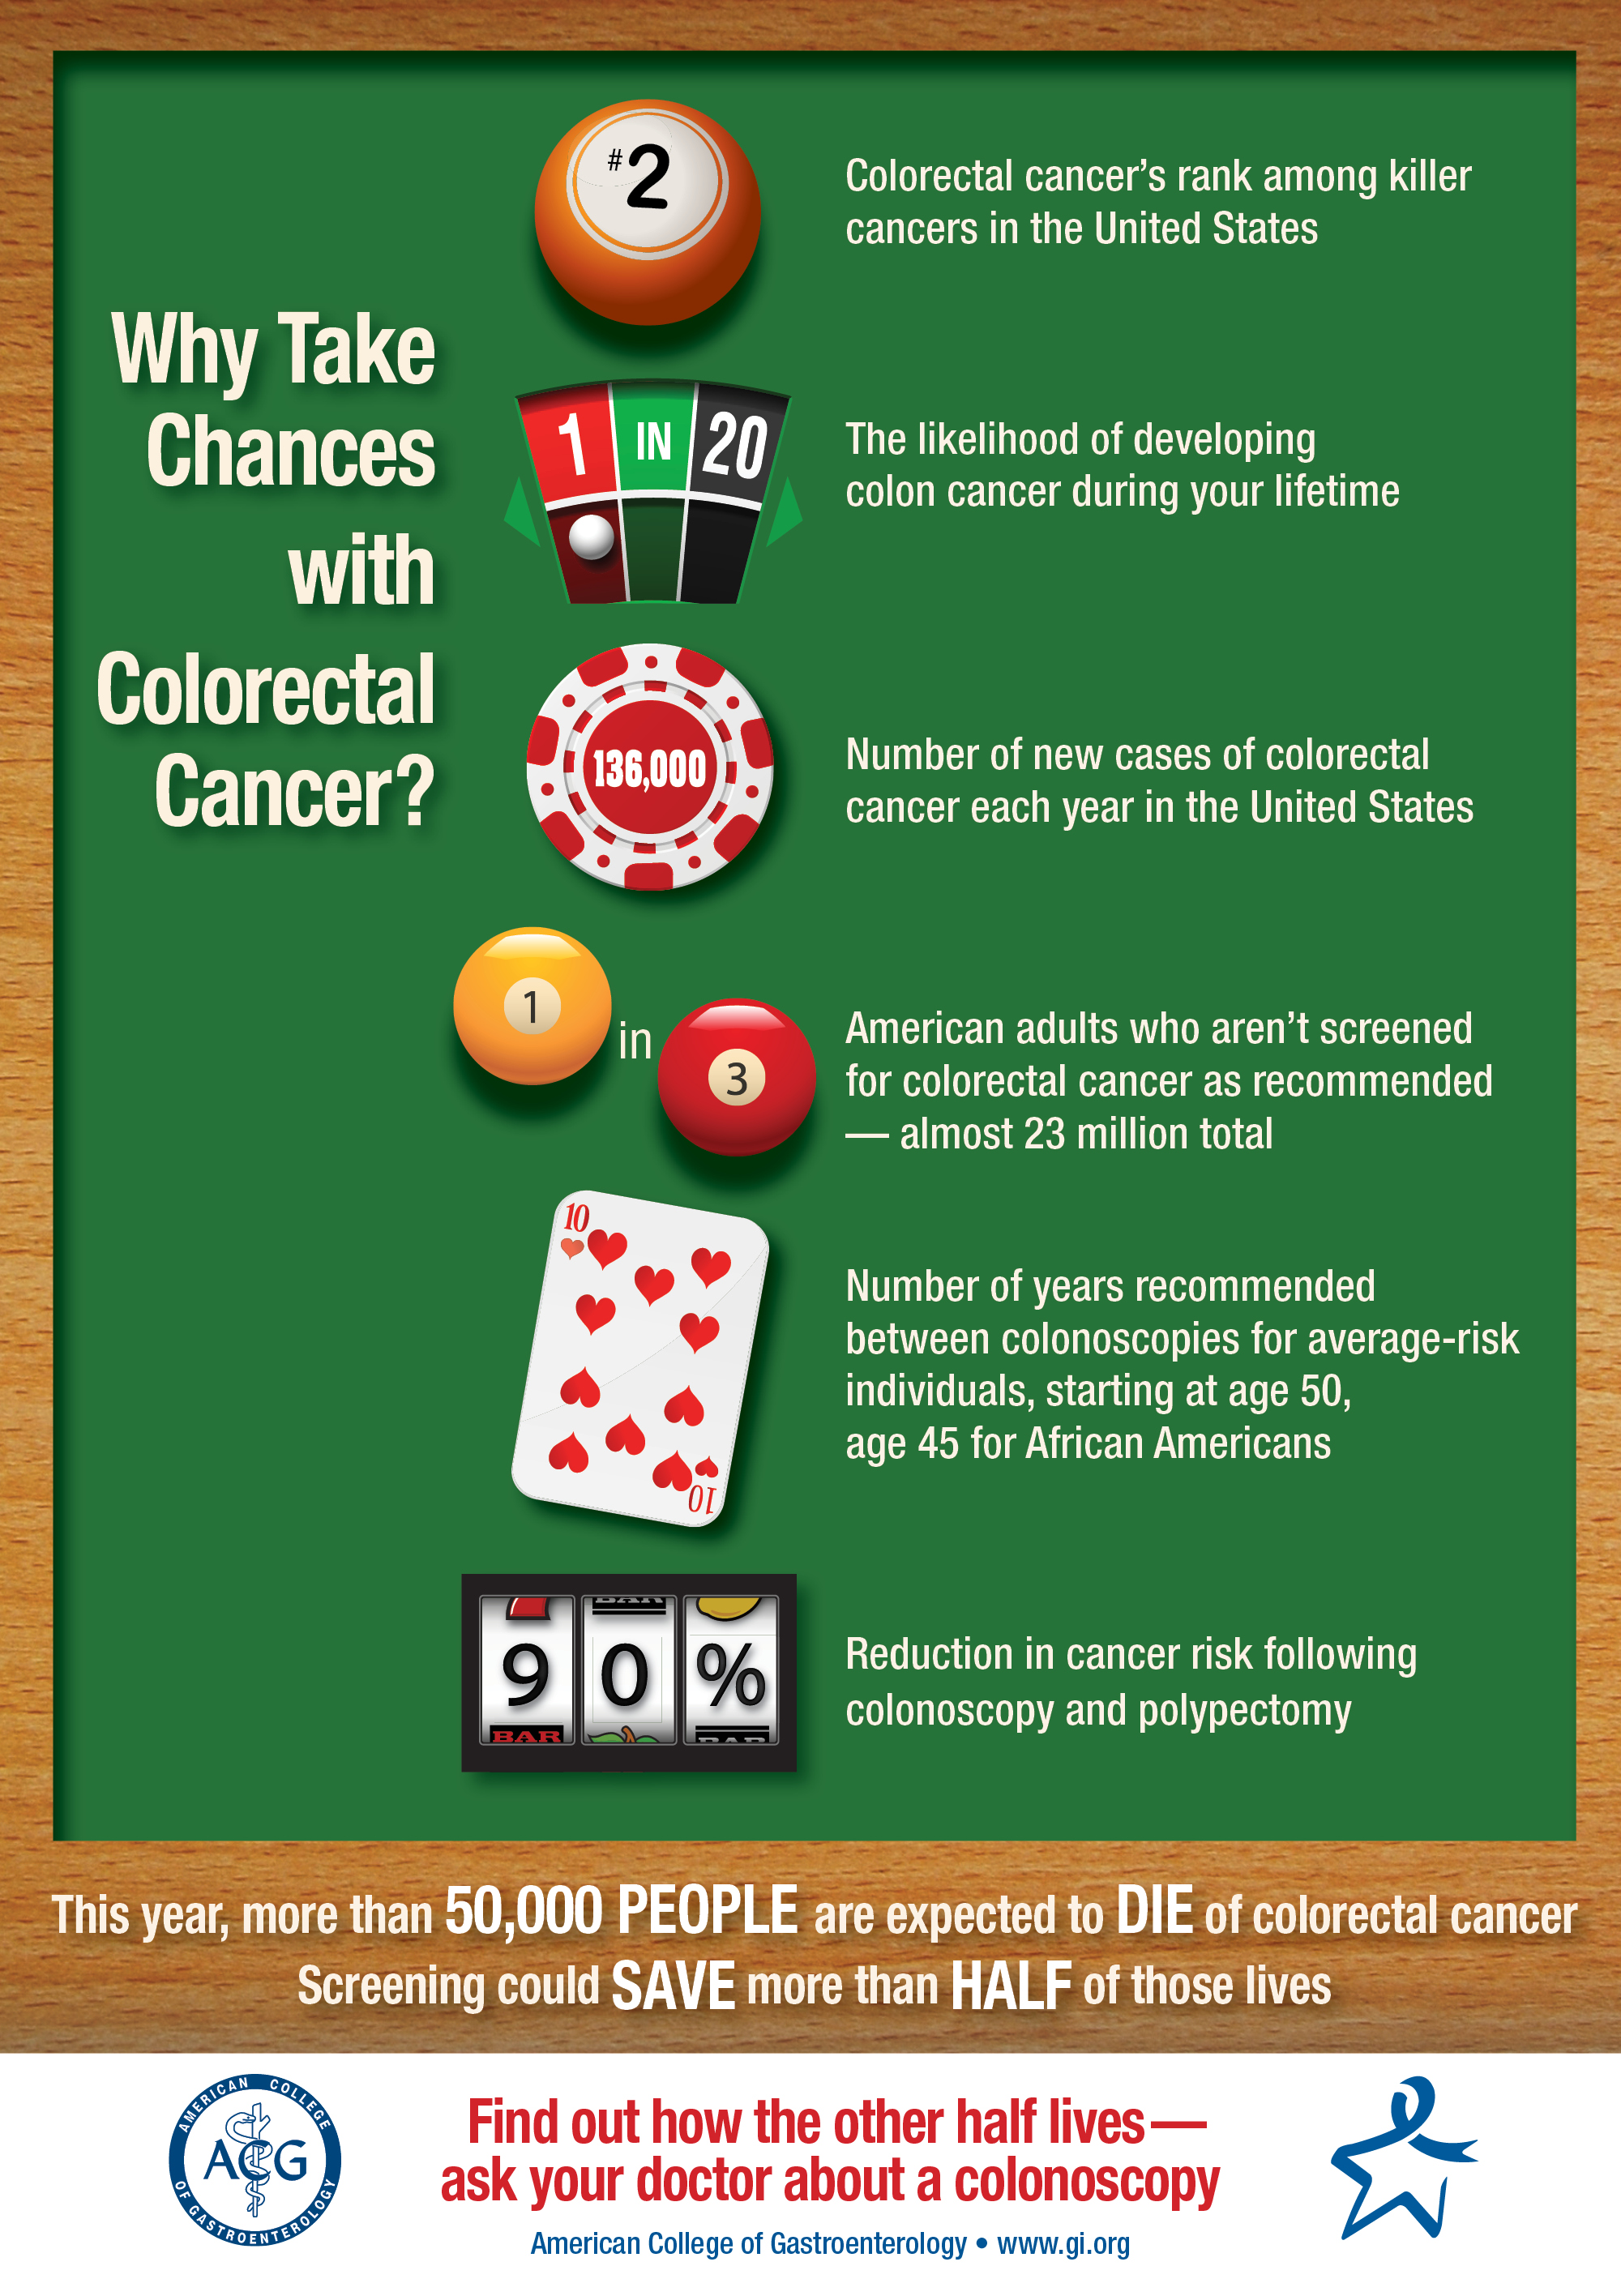 Why Take Chances Infographic